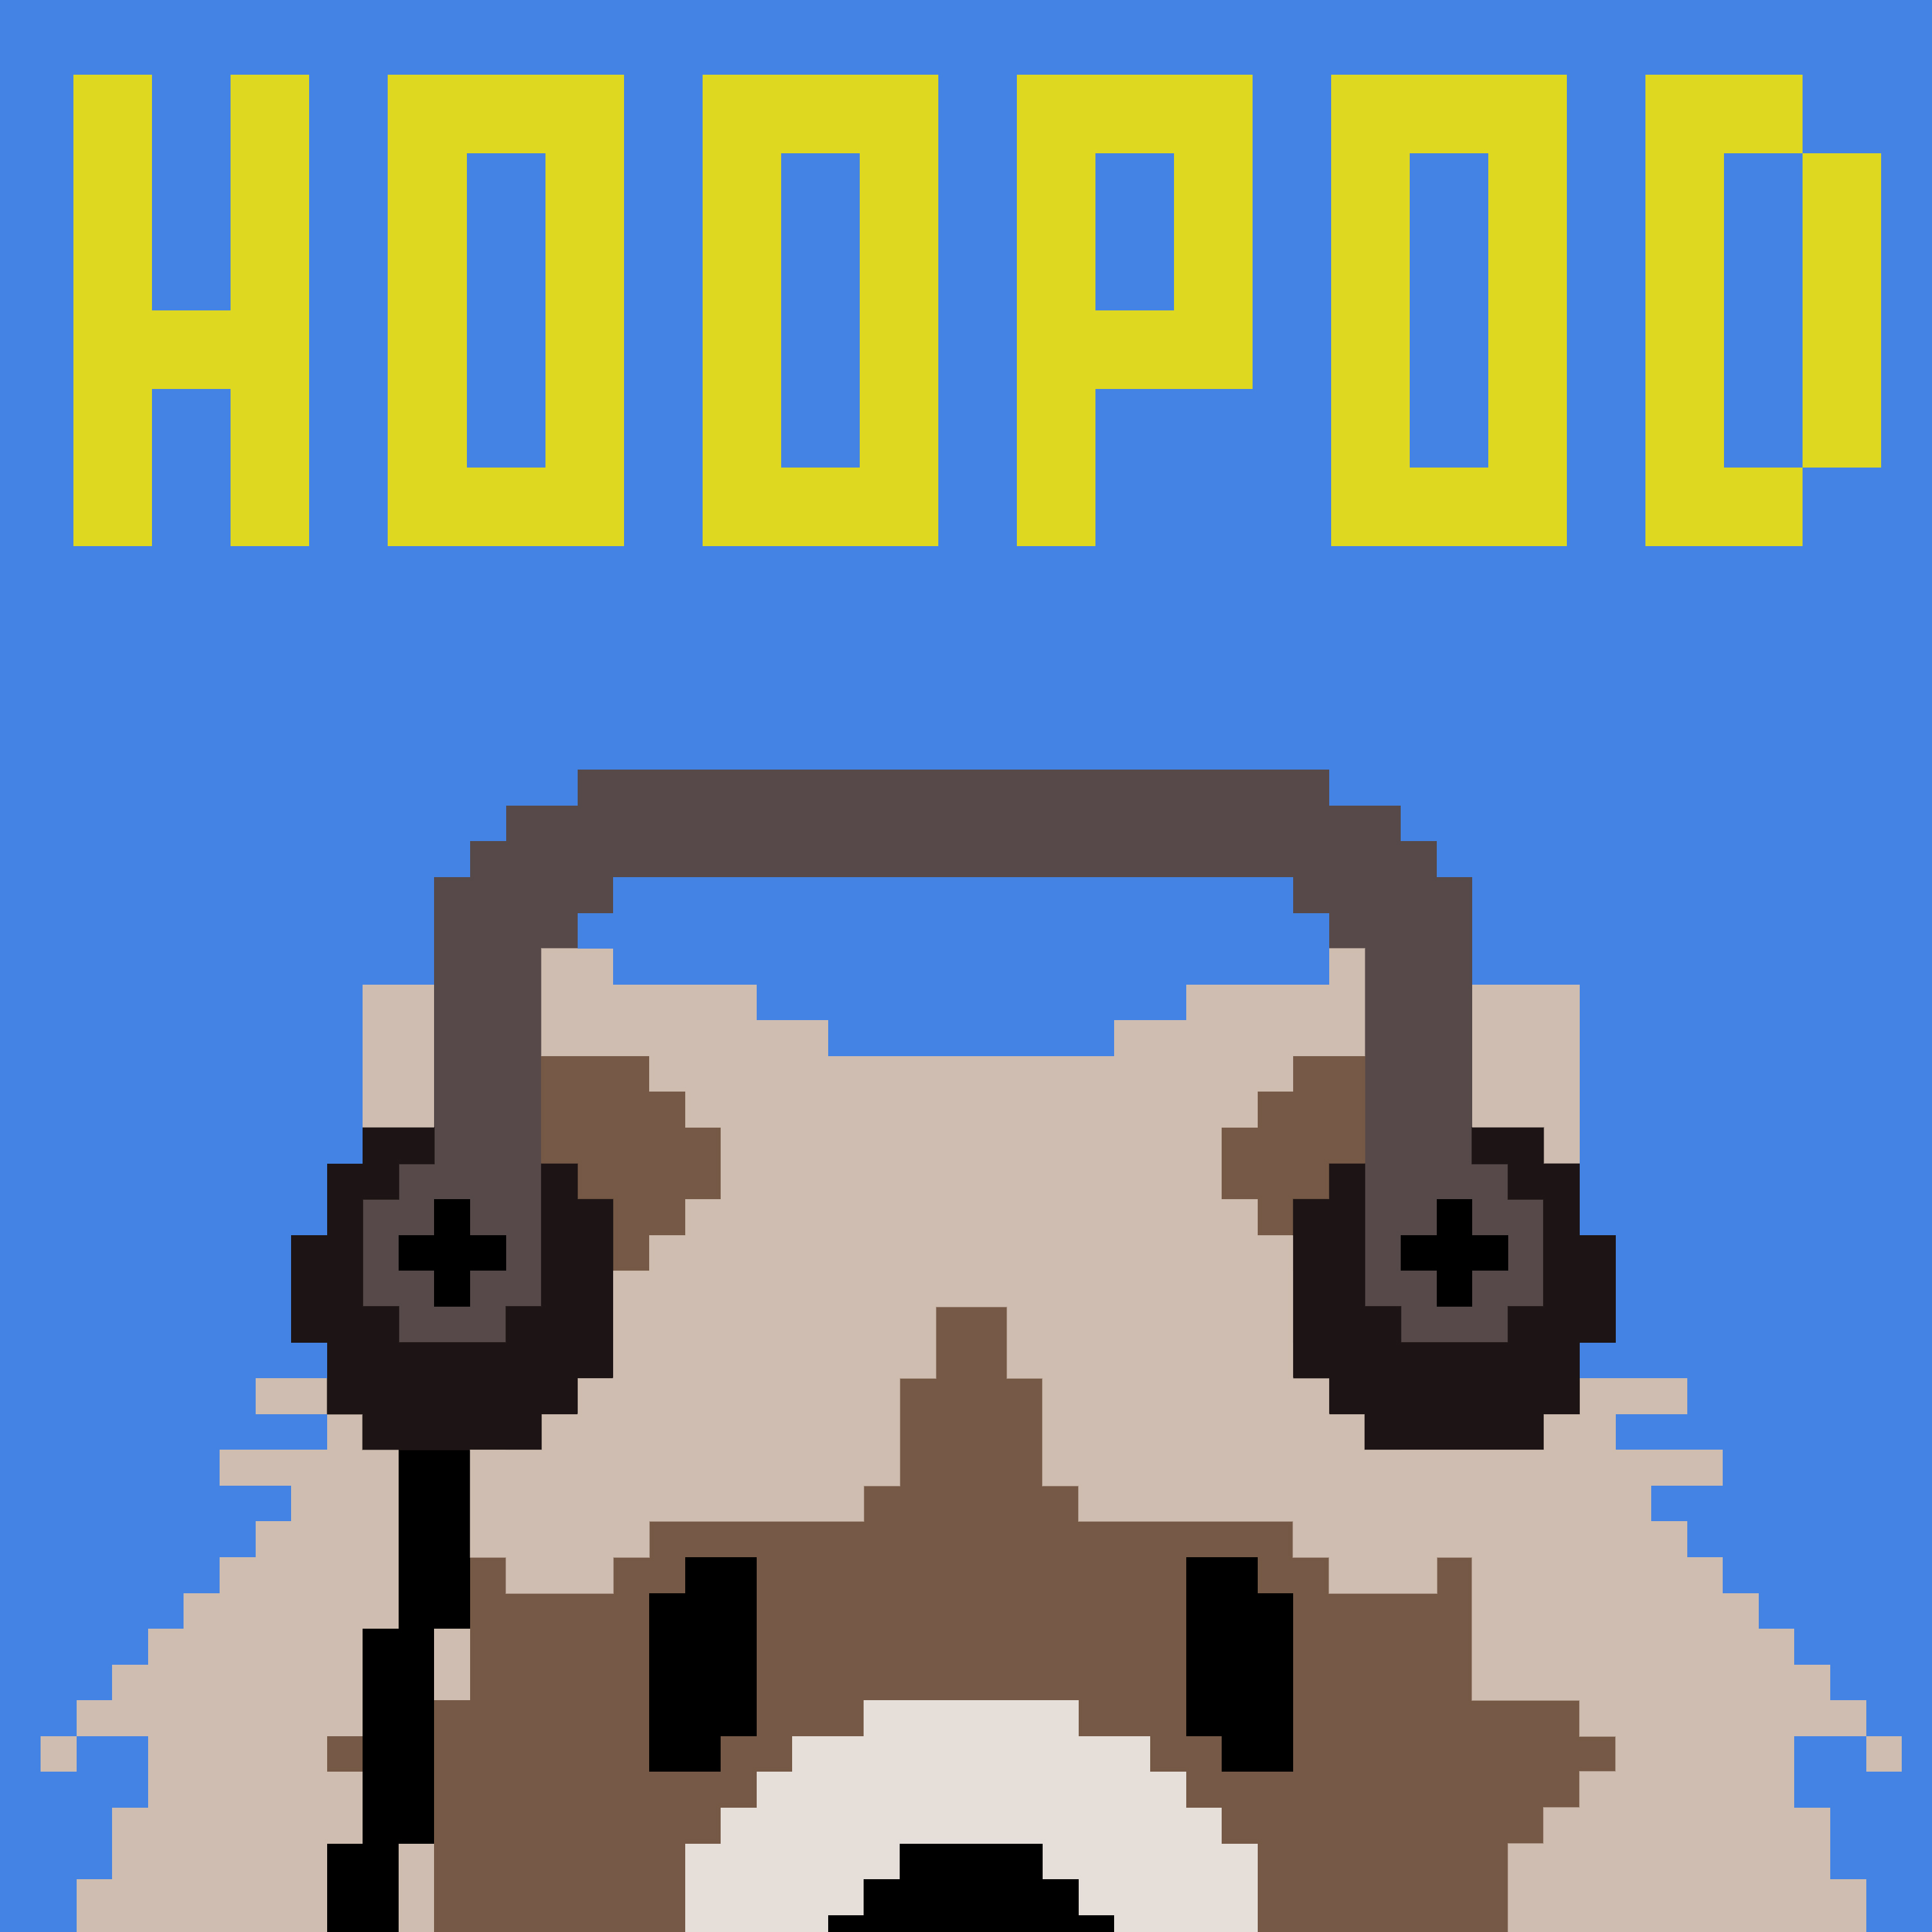 HooPod 59 - Timid Bunny - Chose a number between 1 and 2